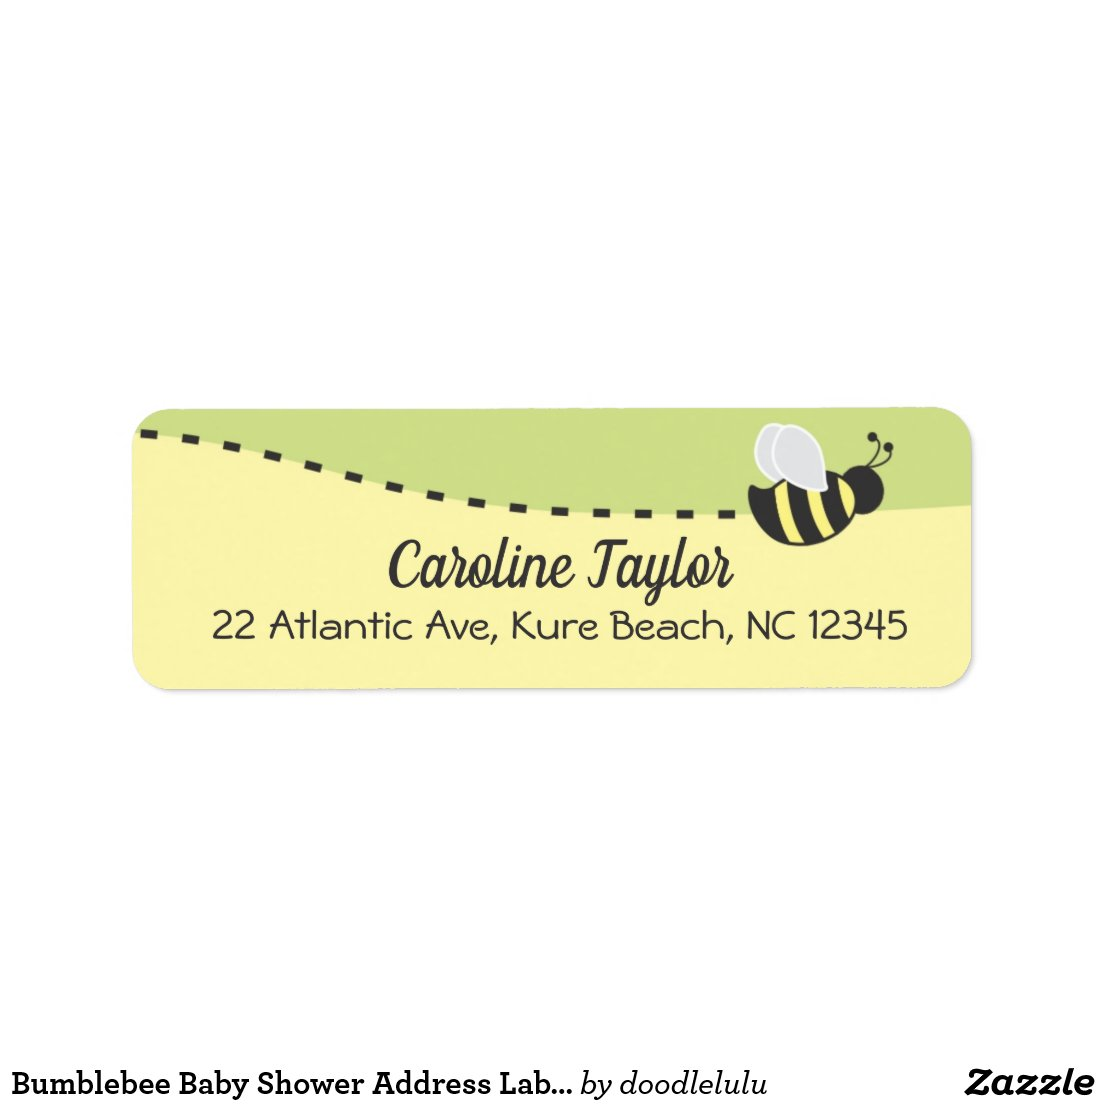 Bumblebee Baby Shower Address Label, Colorblock Label